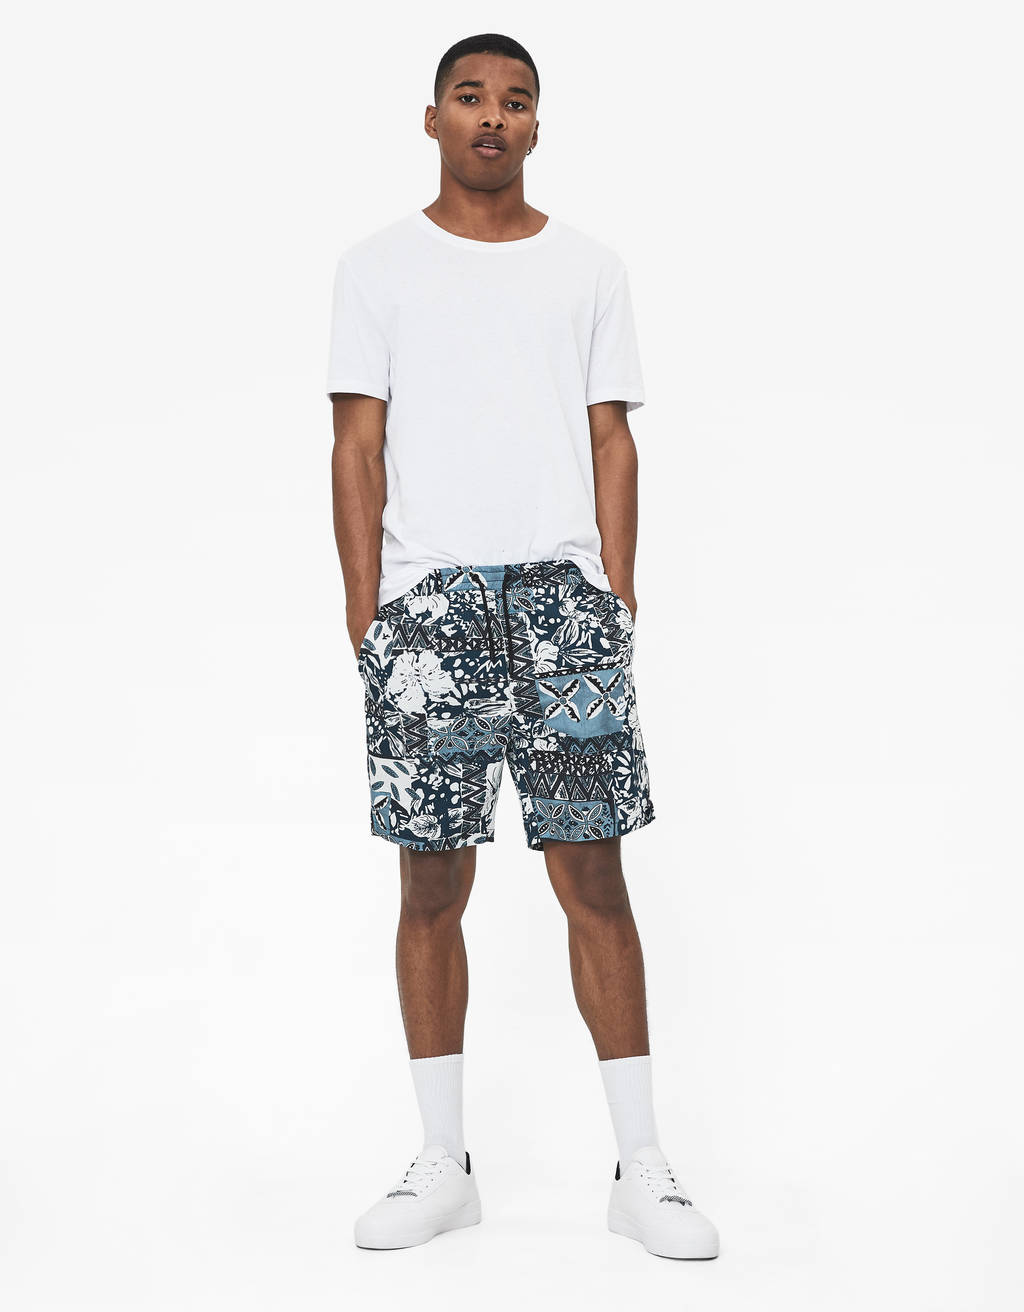 Bermuda shorts with tribal print